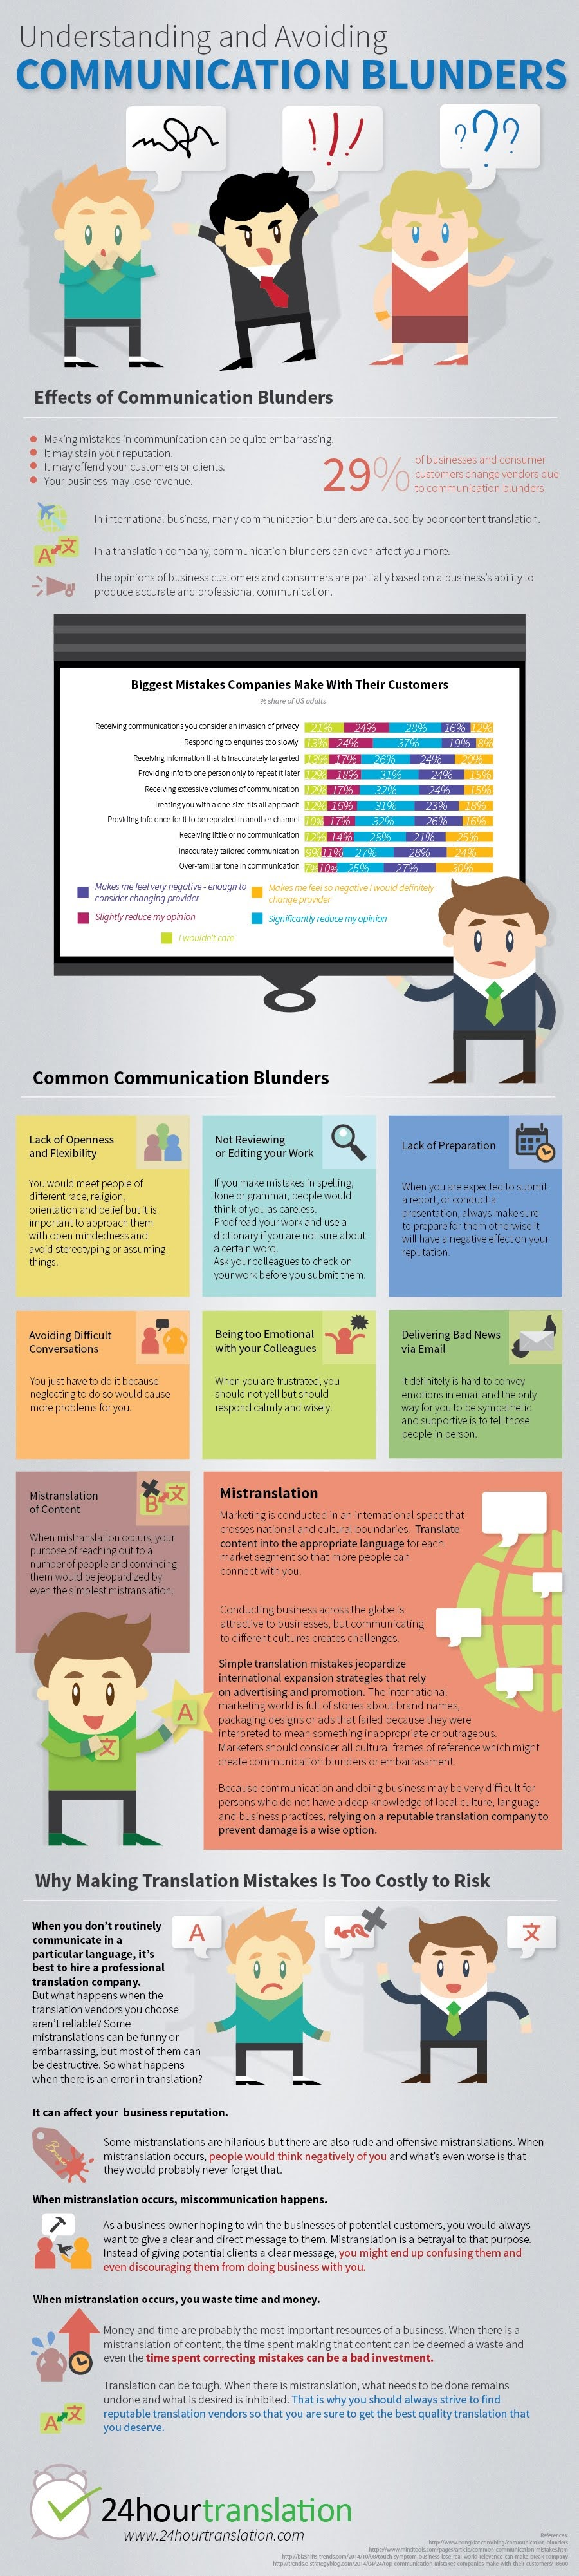 Understanding And Avoiding Communication Blunders